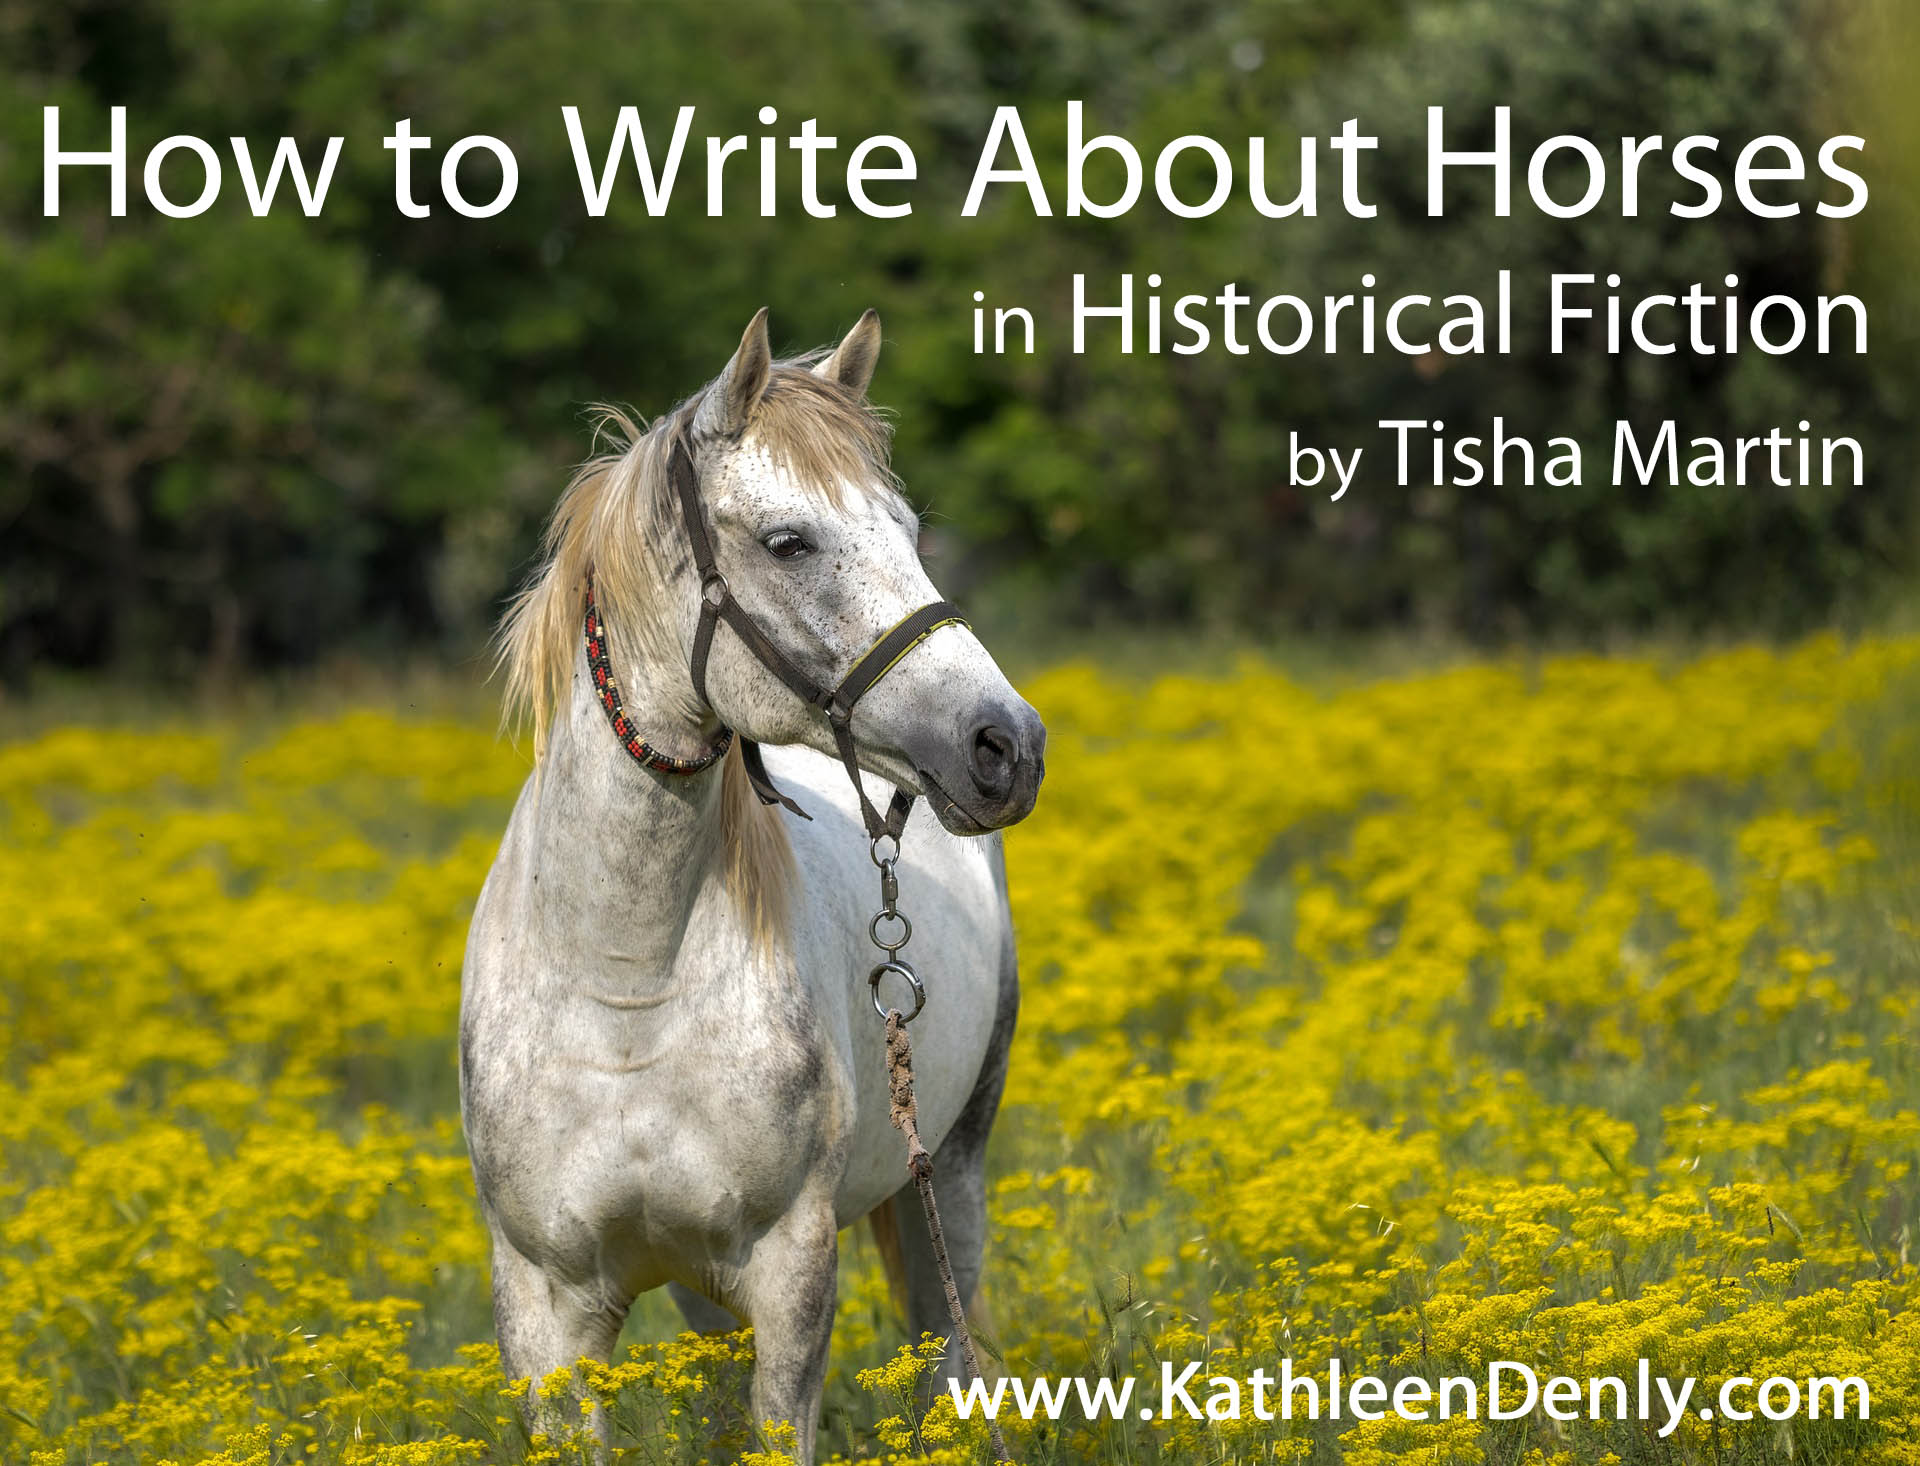 How to Write about Horses in Historical Fiction